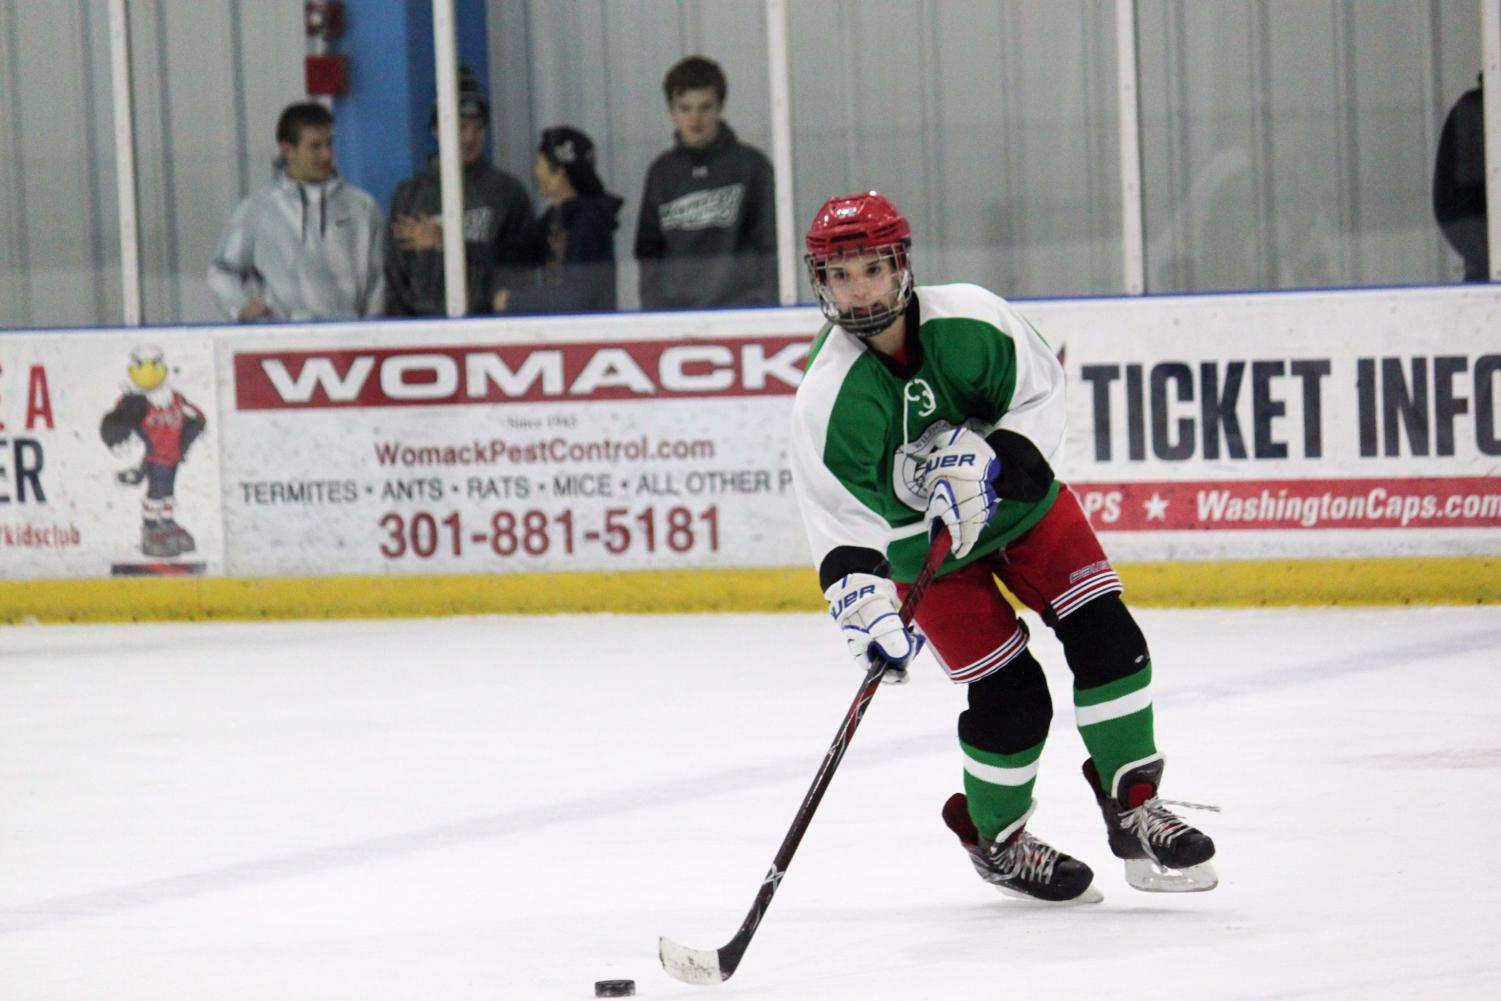 Sophomore Justin Davids has been a key part of the team this year, even as an underclassmen. The future of WJ hockey looks bright.